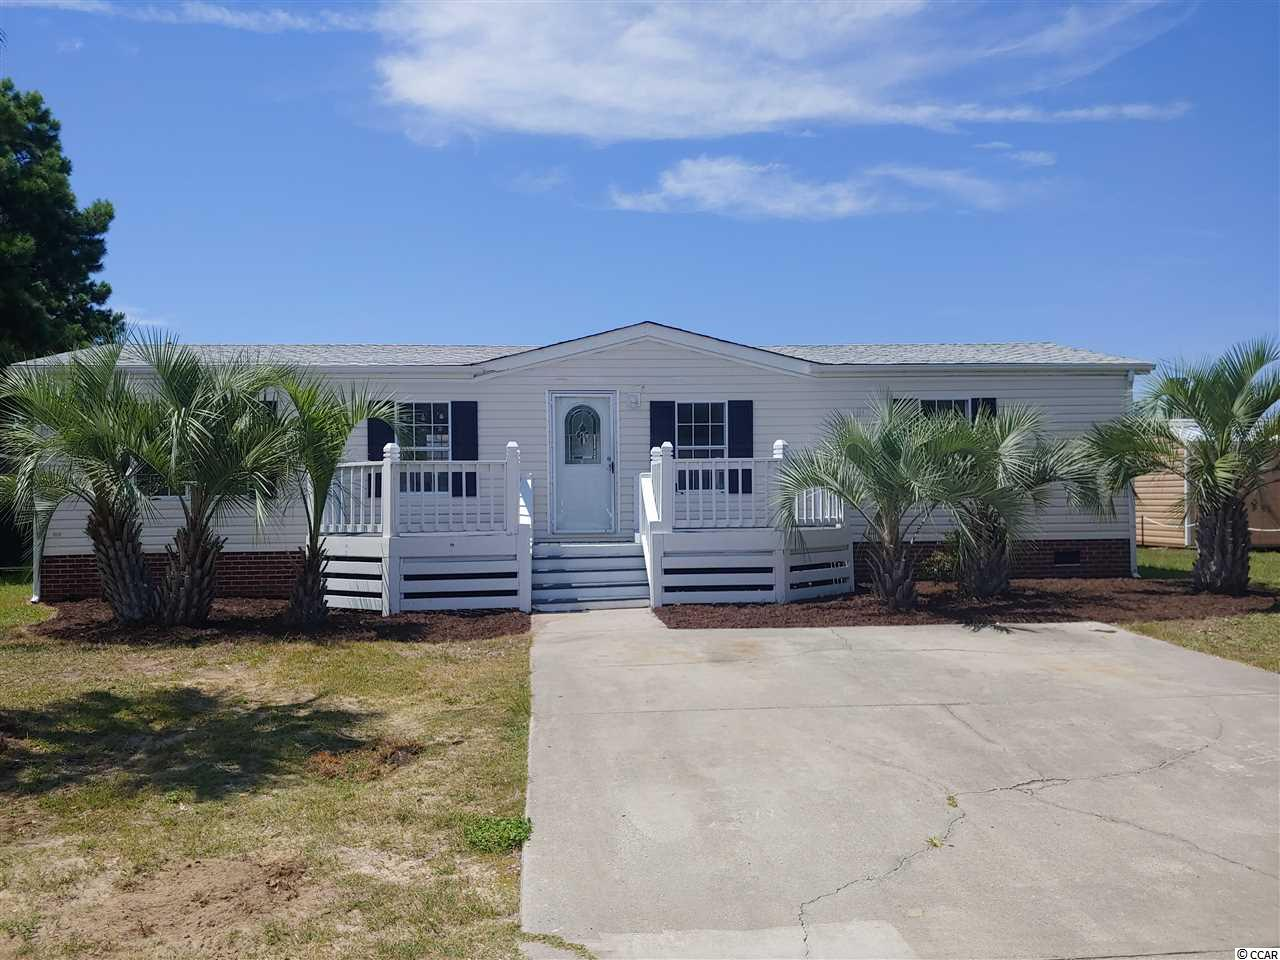 This freshly remodeled home sets in the highly sought after neighborhood of Ocean Breeze Plantation. At less than a mile to the beach, you can be there on a golf cart in just minutes or take a lengthy stroll. As you can see by the pictures this home is ready to move your furniture in. As a beach house or permanent resident it is waiting for you. Make arrangements now to see this property as it won't last long!